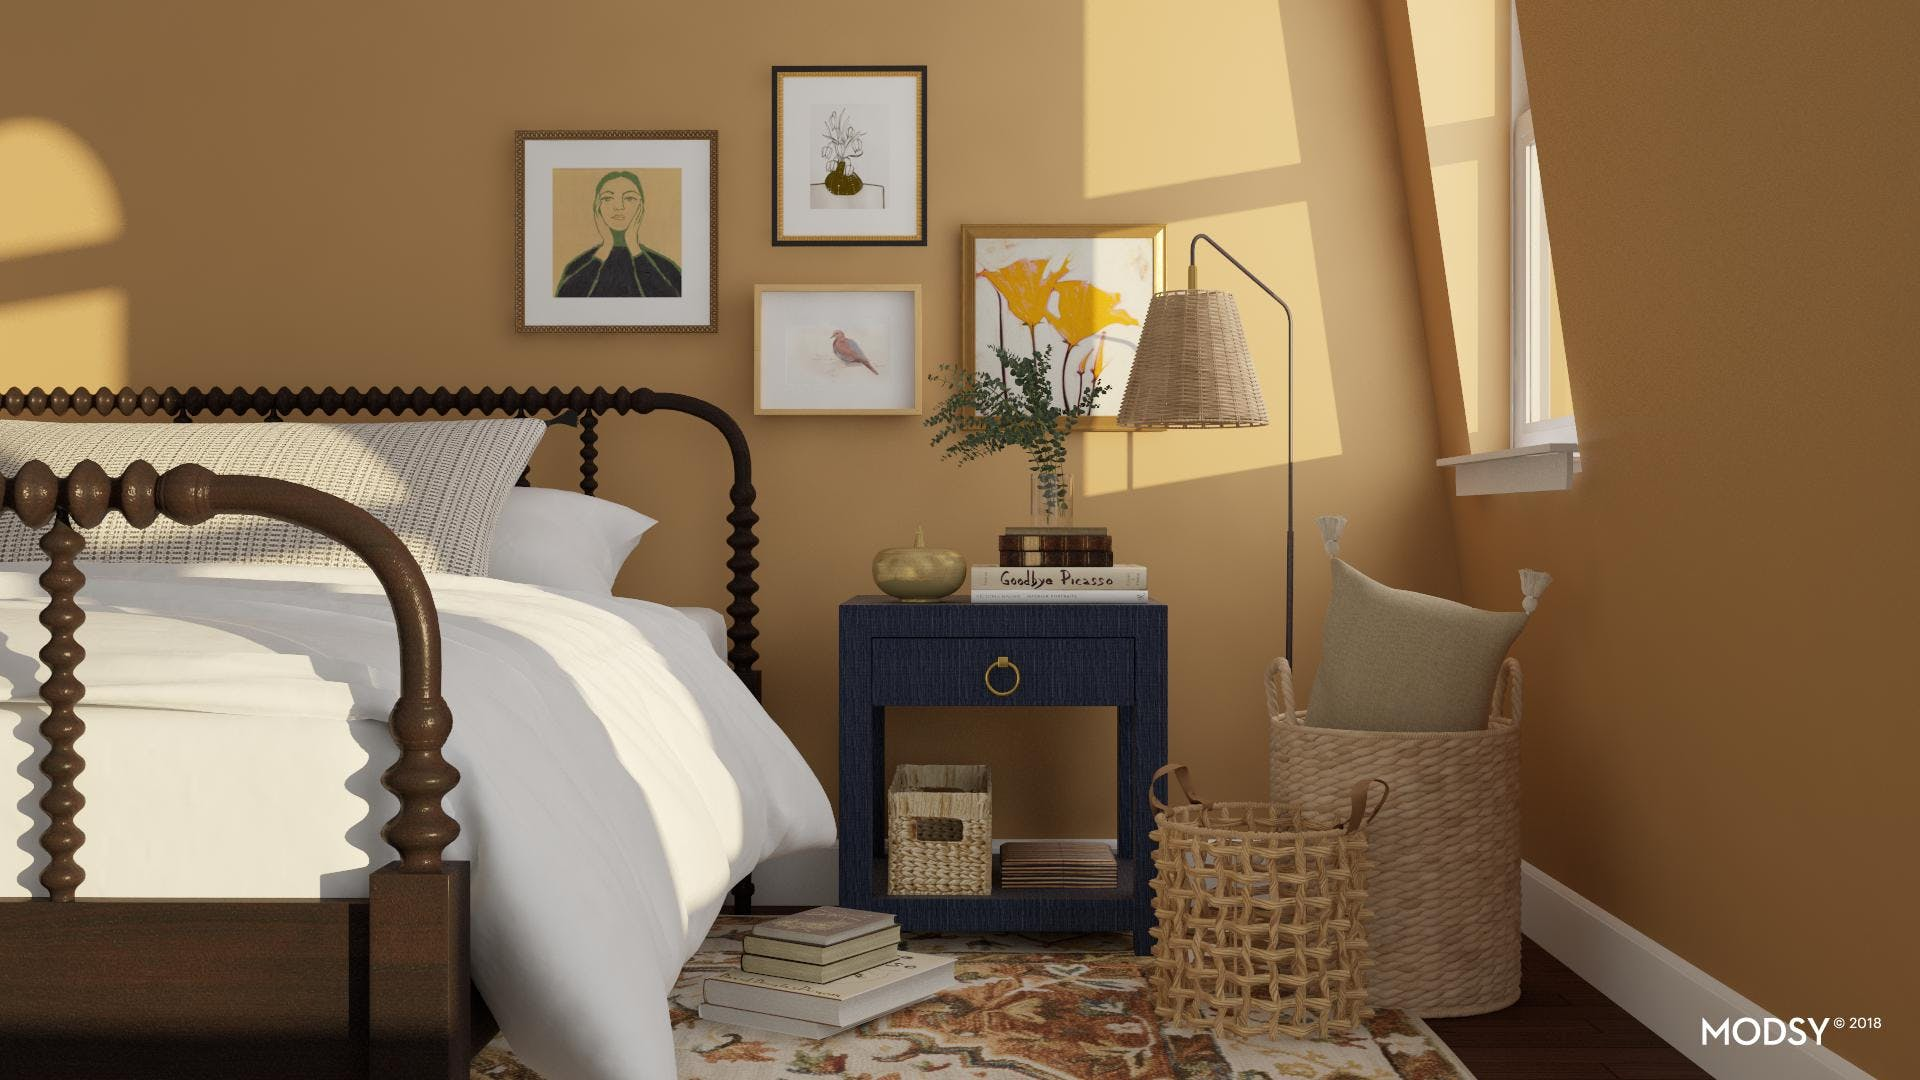 A Modern Take On A Traditional Bed Frame